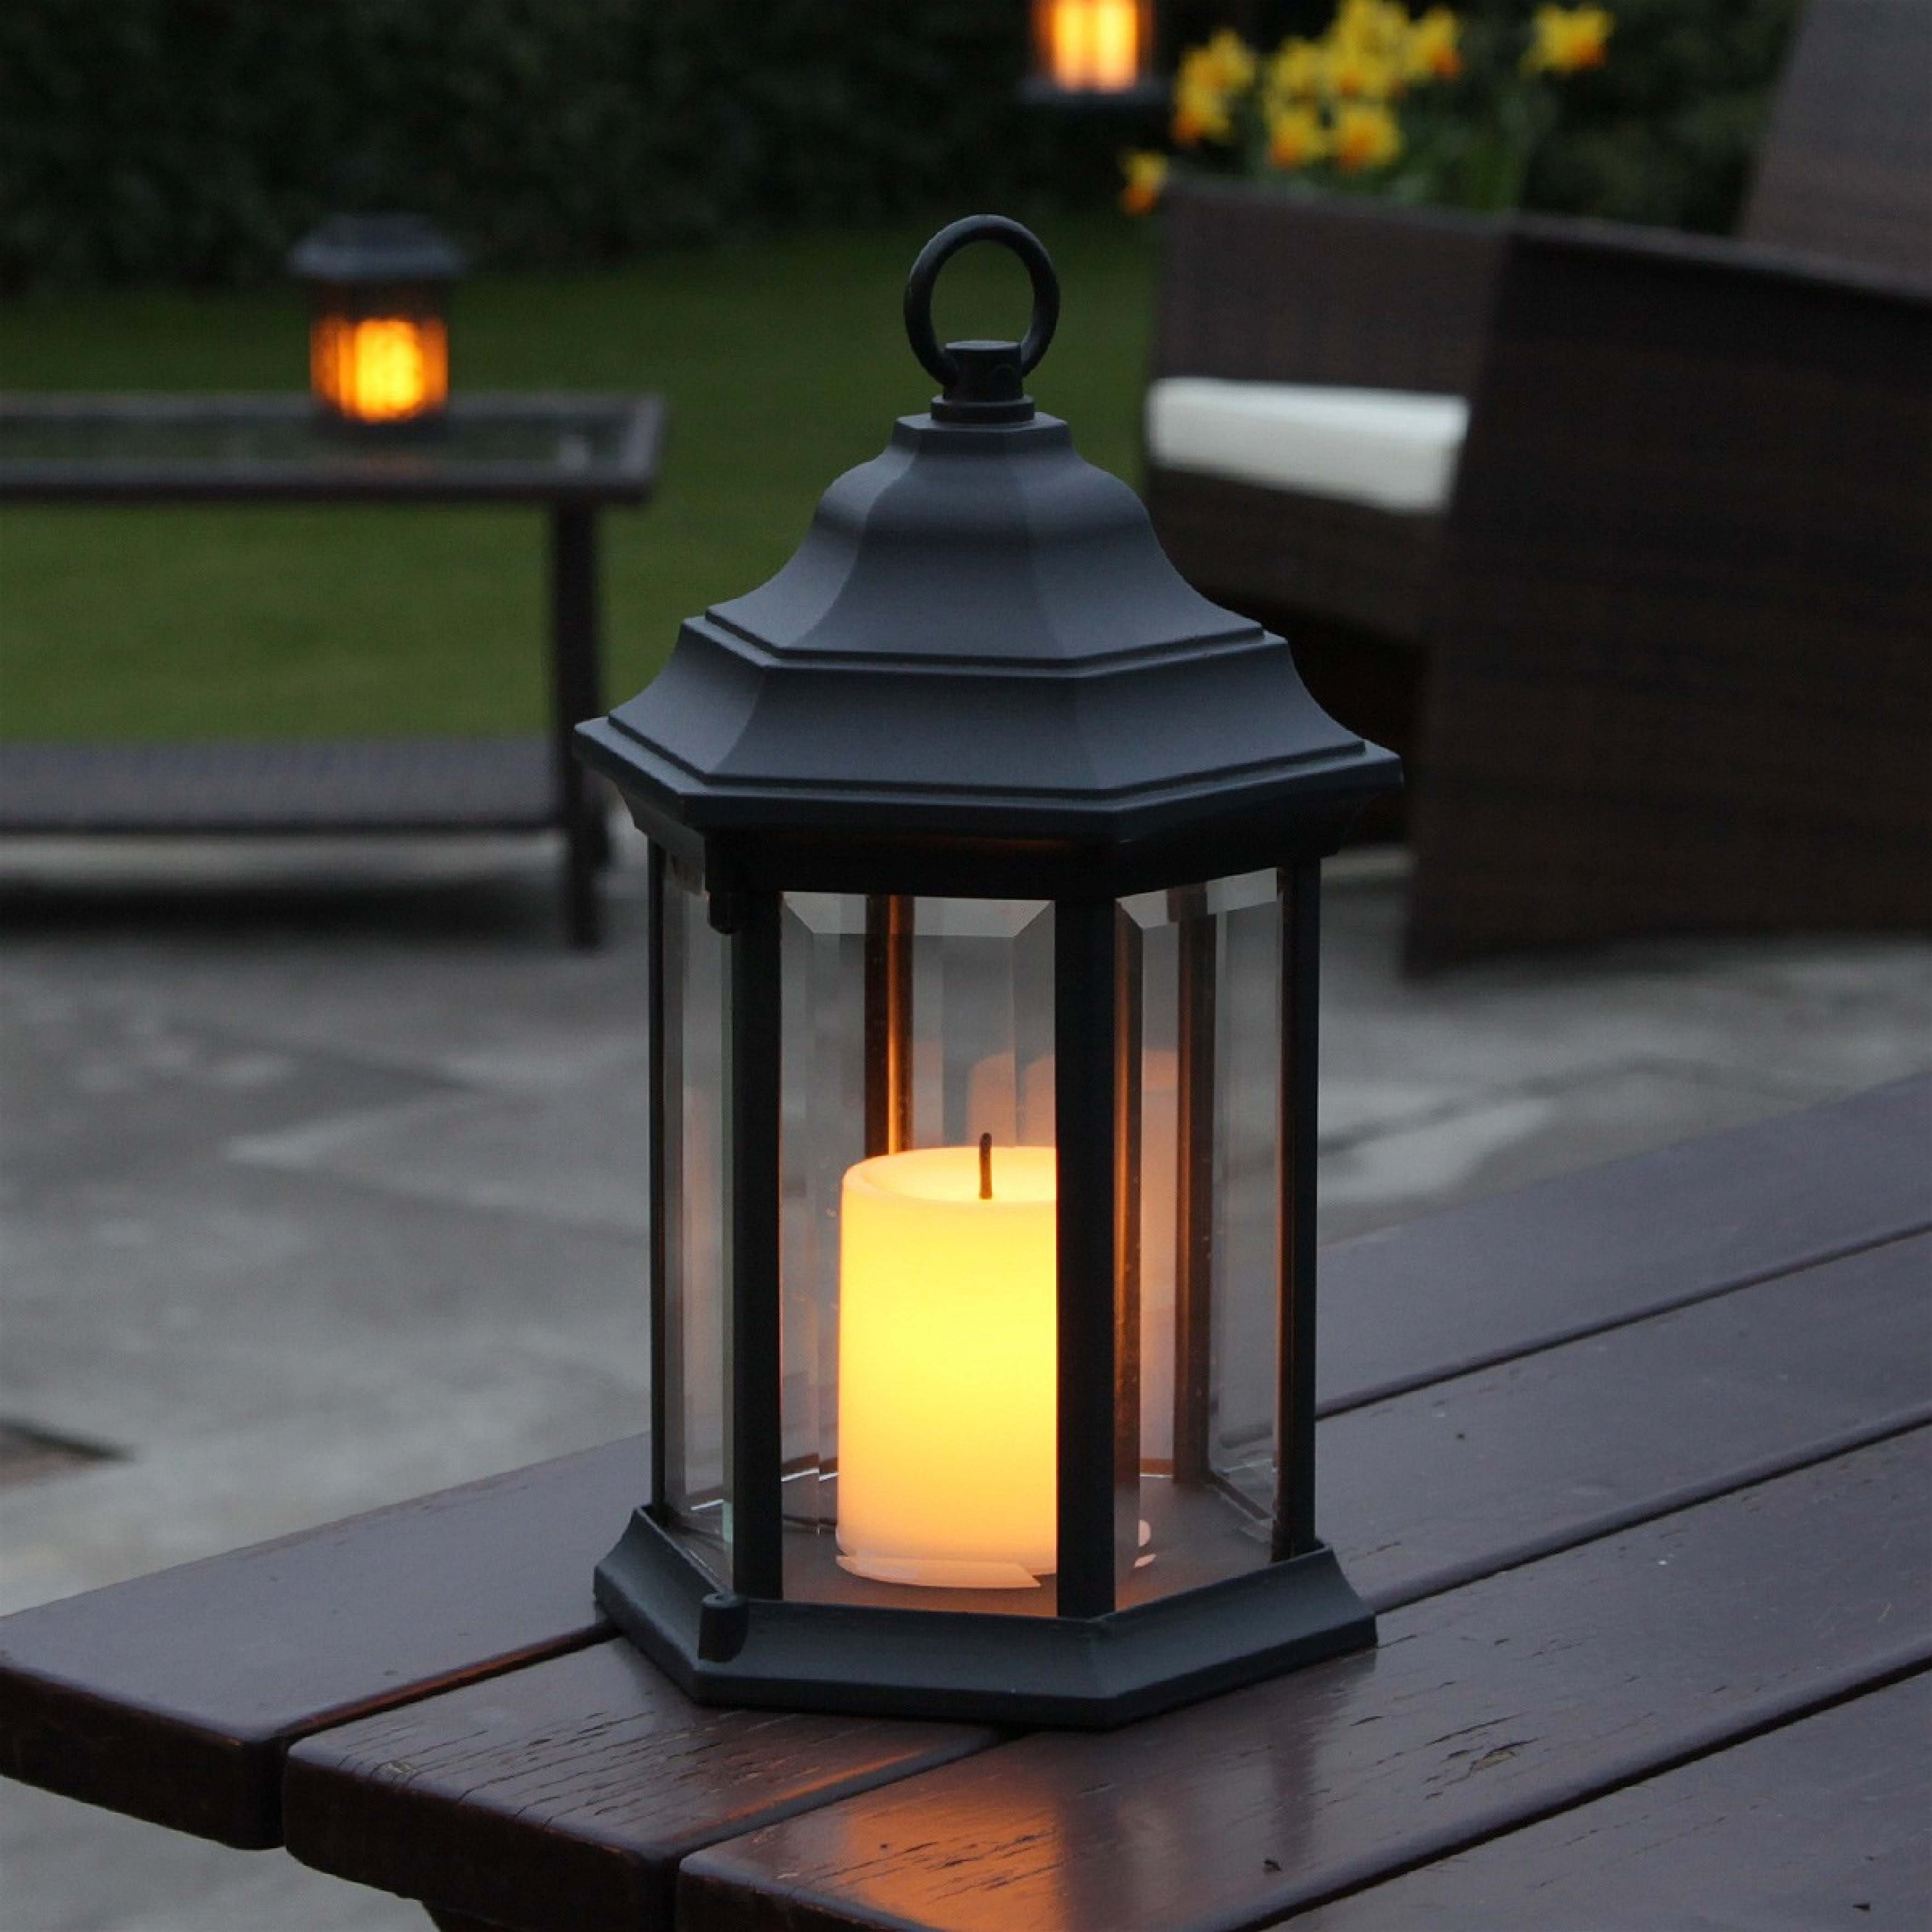 Outdoor Lanterns With Timers | Seattle Outdoor Art Inside Outdoor Timer Lanterns (View 11 of 20)